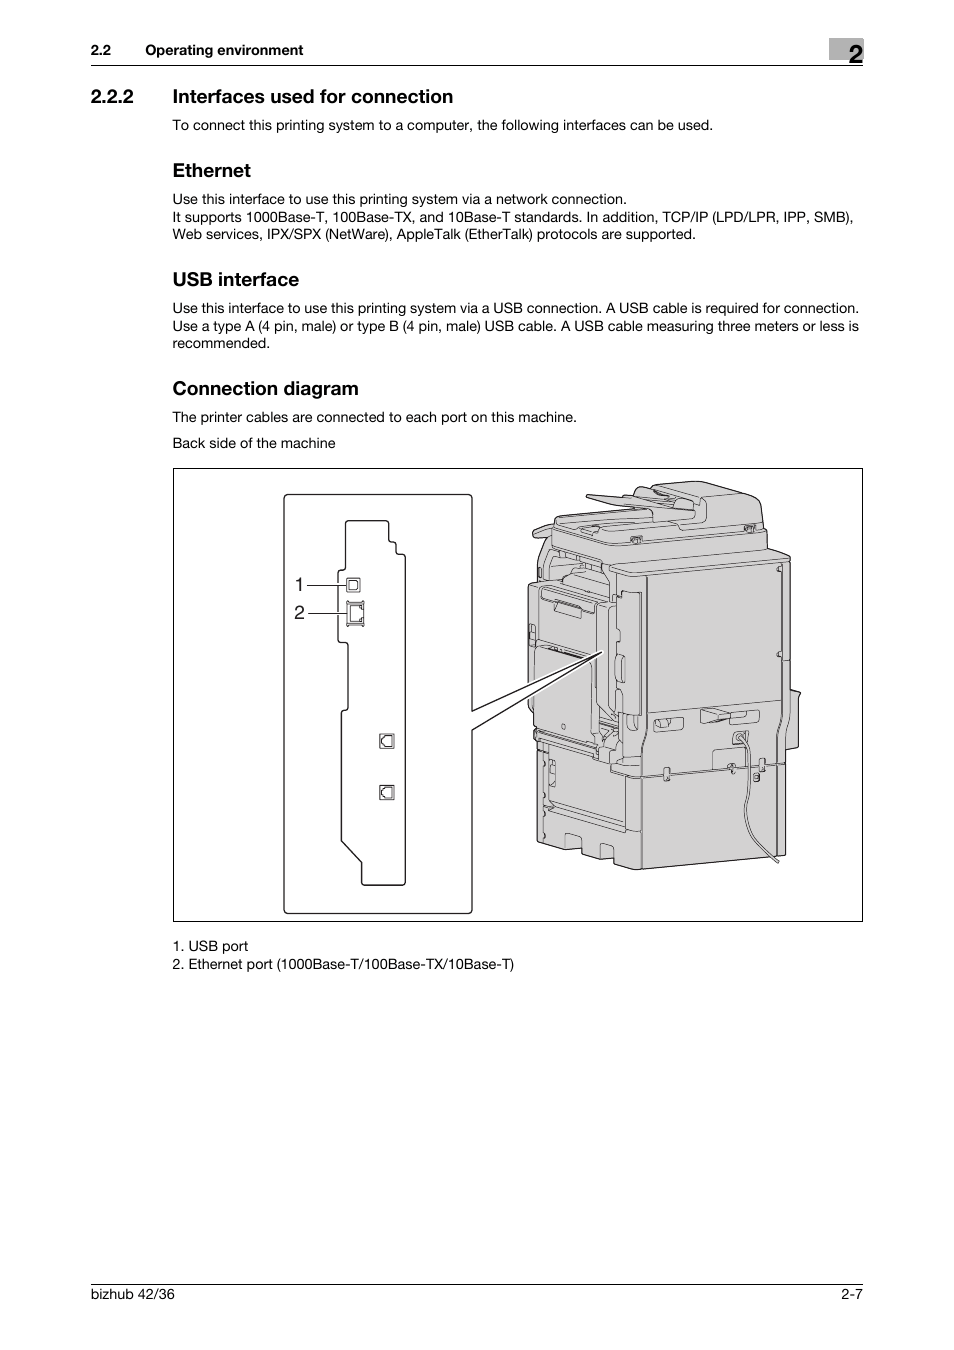 hight resolution of 2 interfaces used for connection ethernet usb interface konica minolta bizhub 36 user manual page 17 198